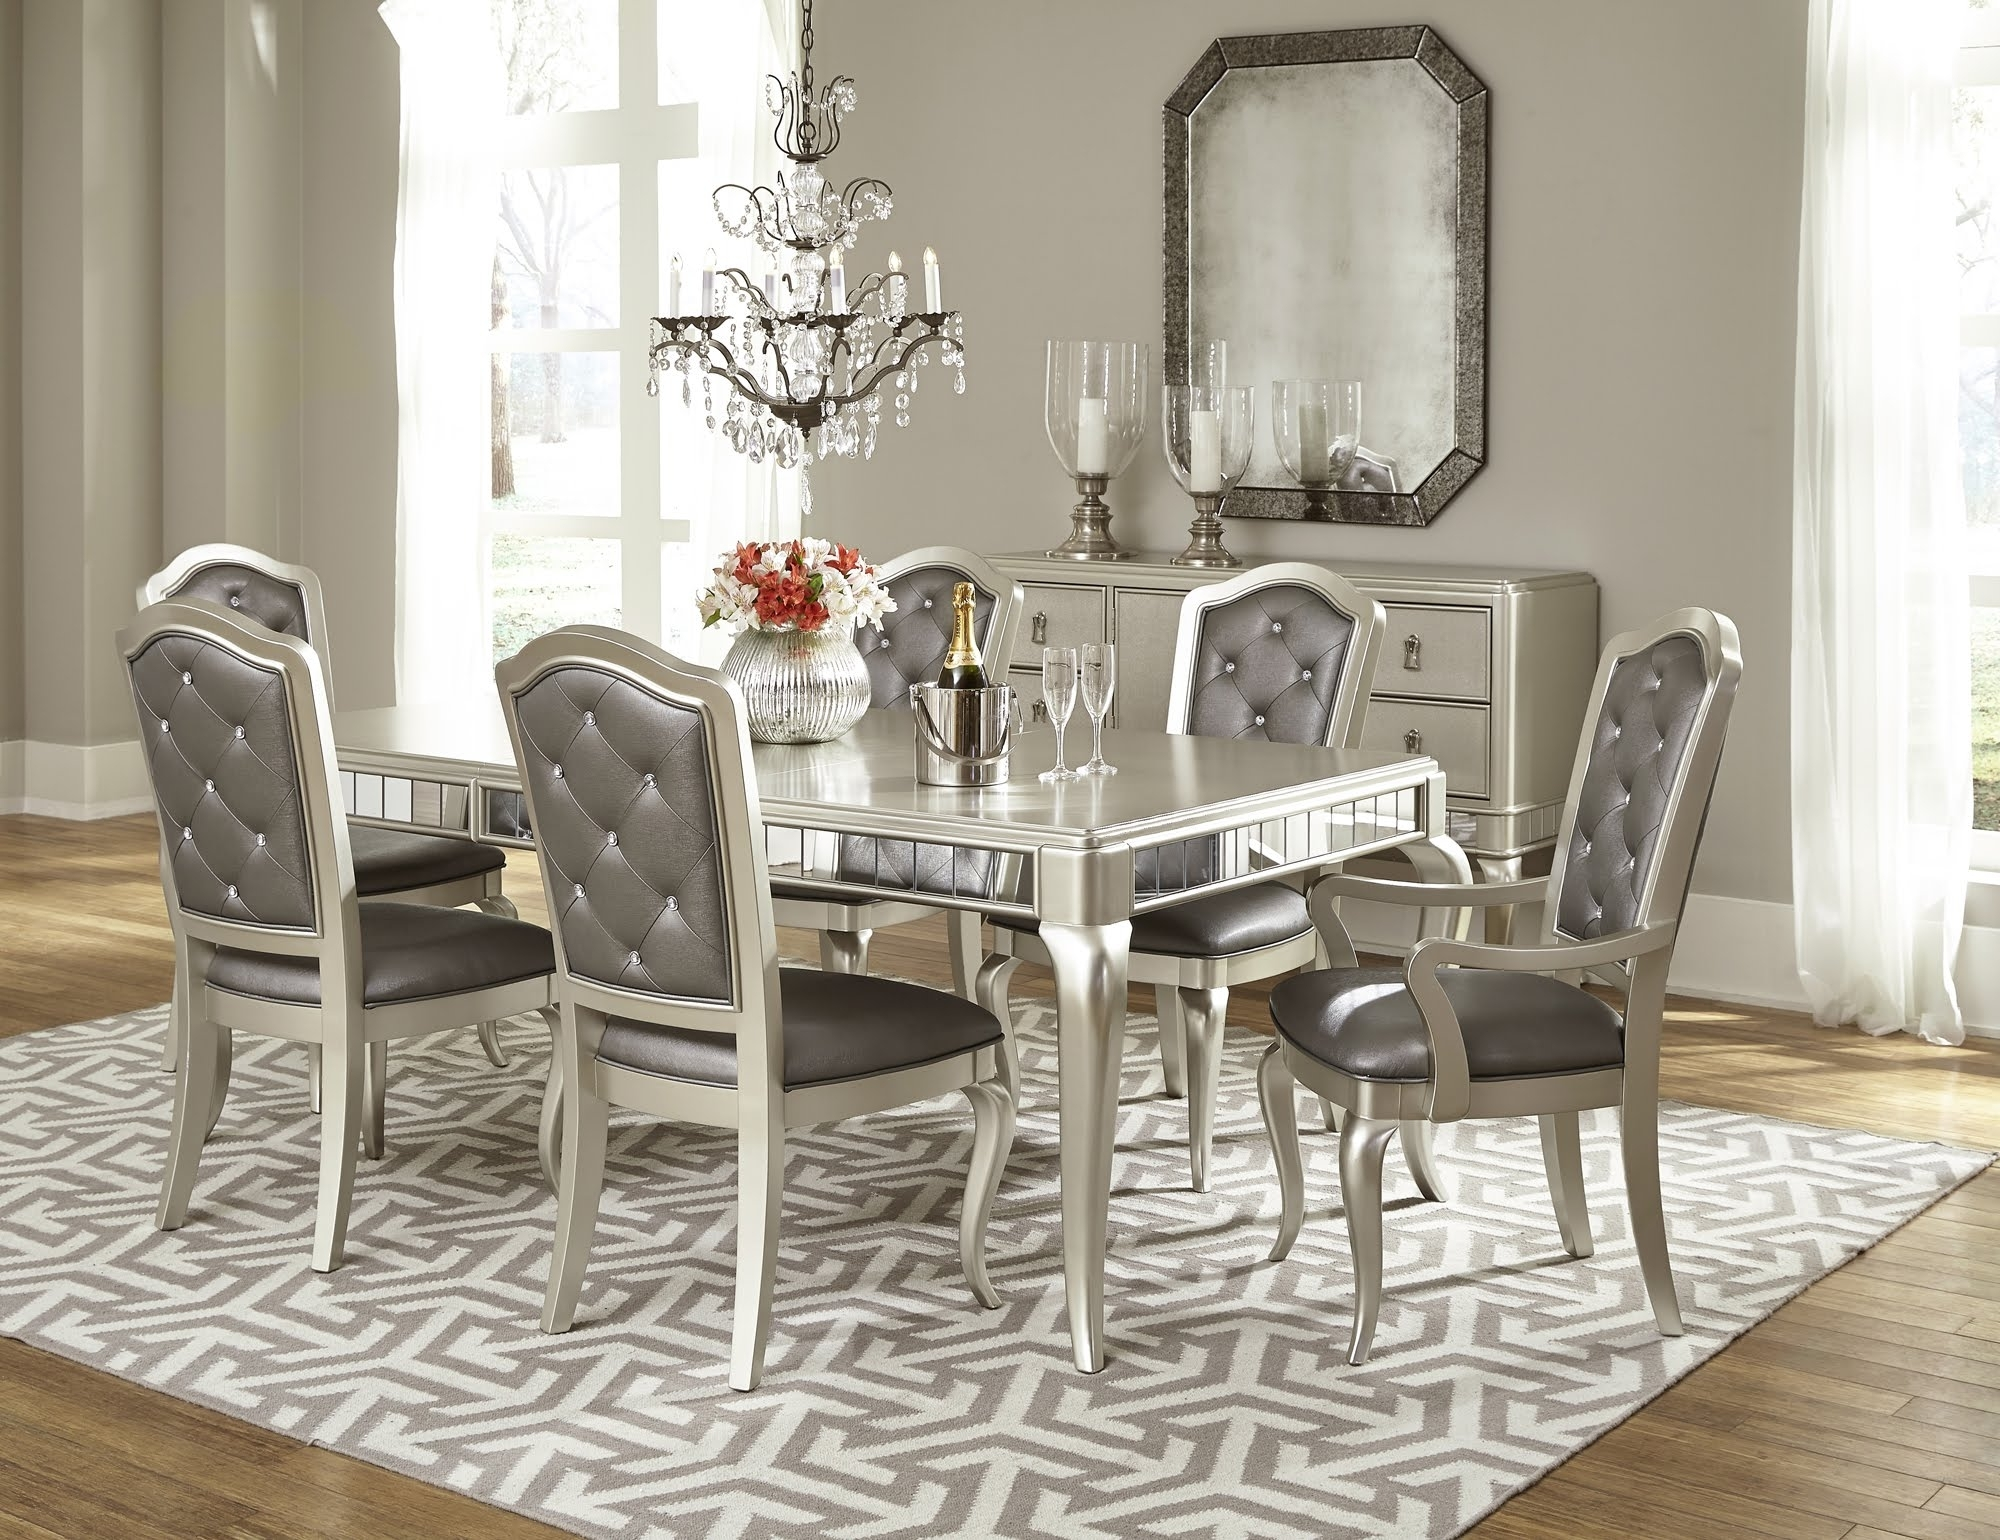 Diva Dining Room Set In Platinum Blingsamuel Lawrence Regarding Widely Used Sofa Chairs With Dining Table (View 13 of 15)